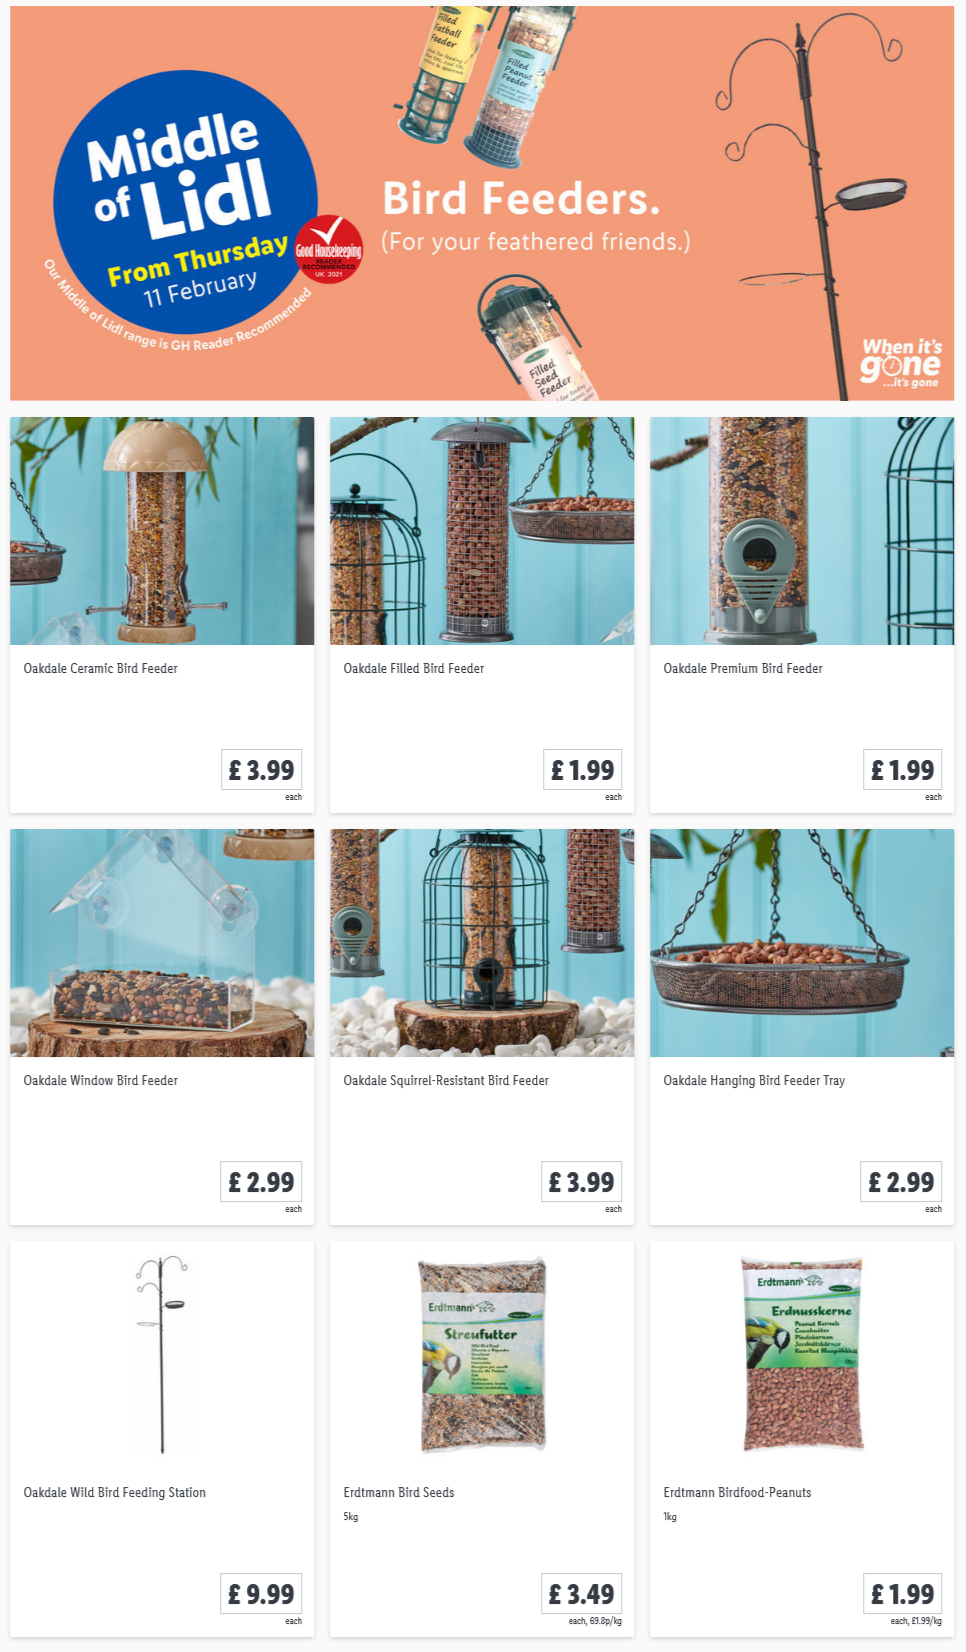 LIDL Bird Feeders Offers From Thursday 11th February 2021